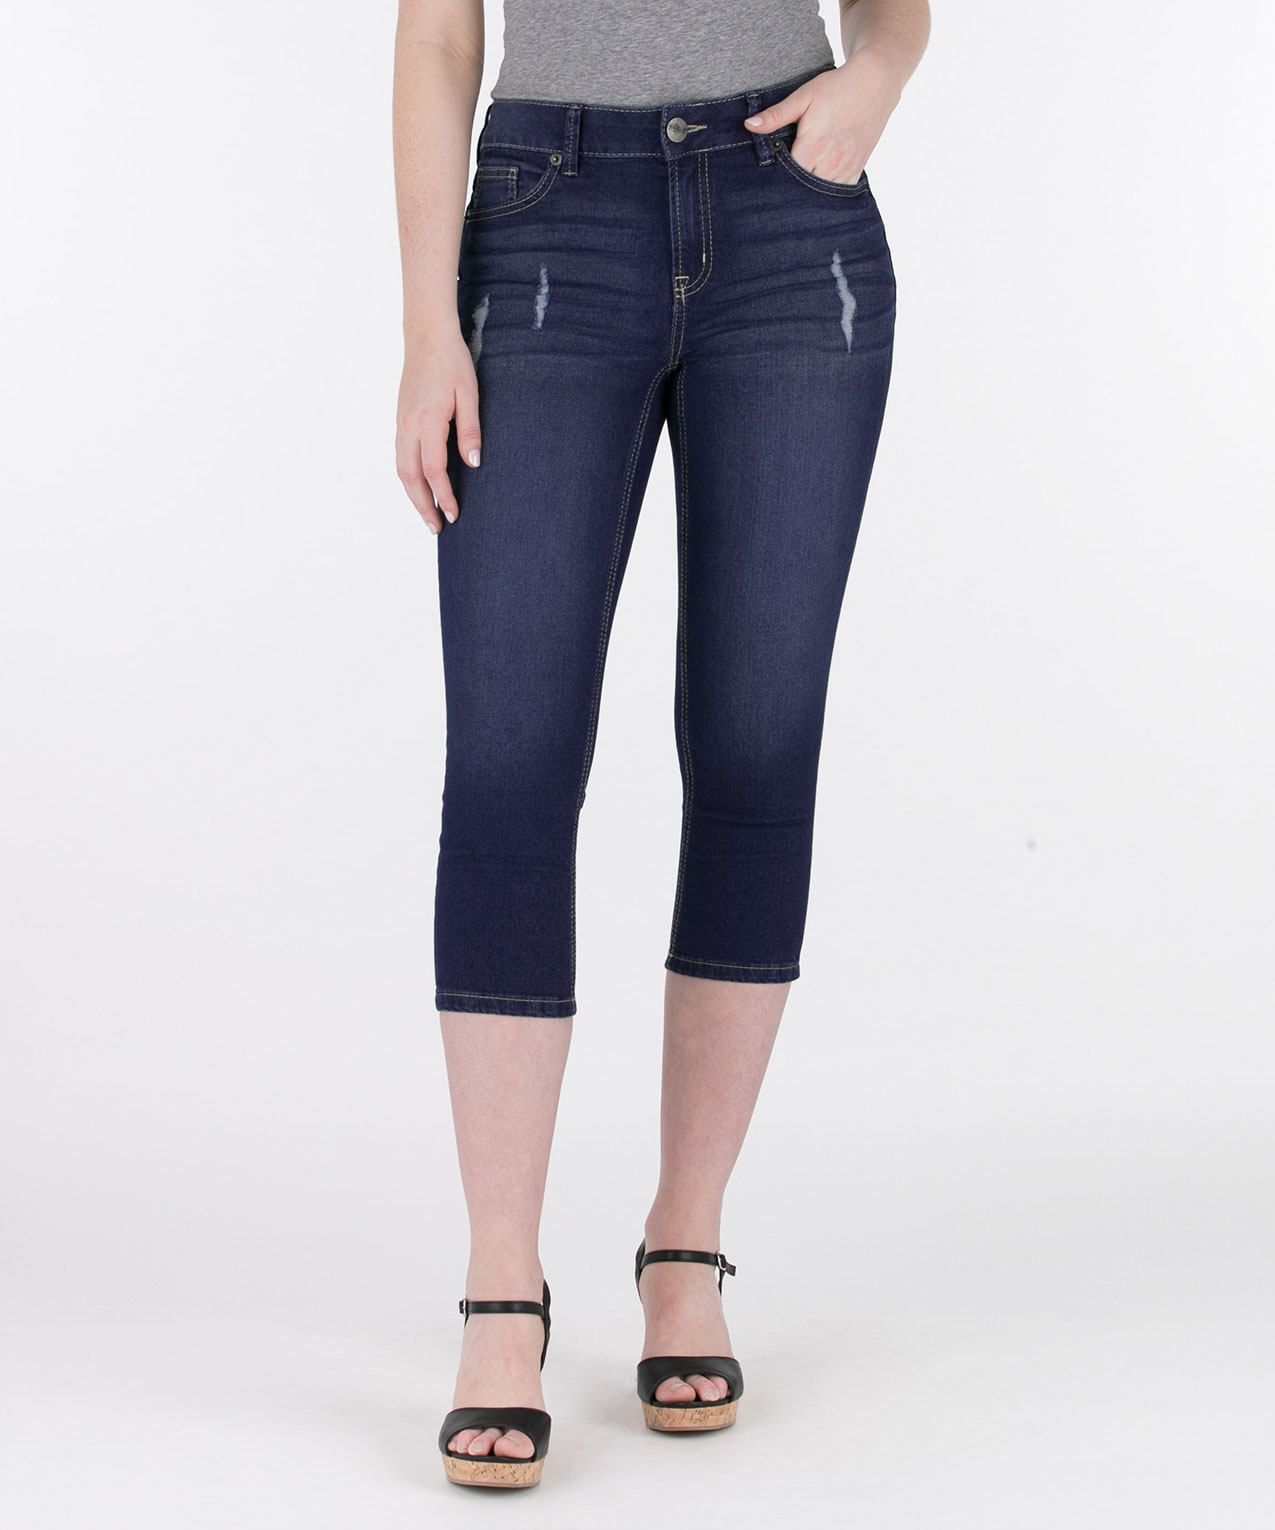 Heavy Stitch Distressed Capri Jean, Mid Wash, hi-res